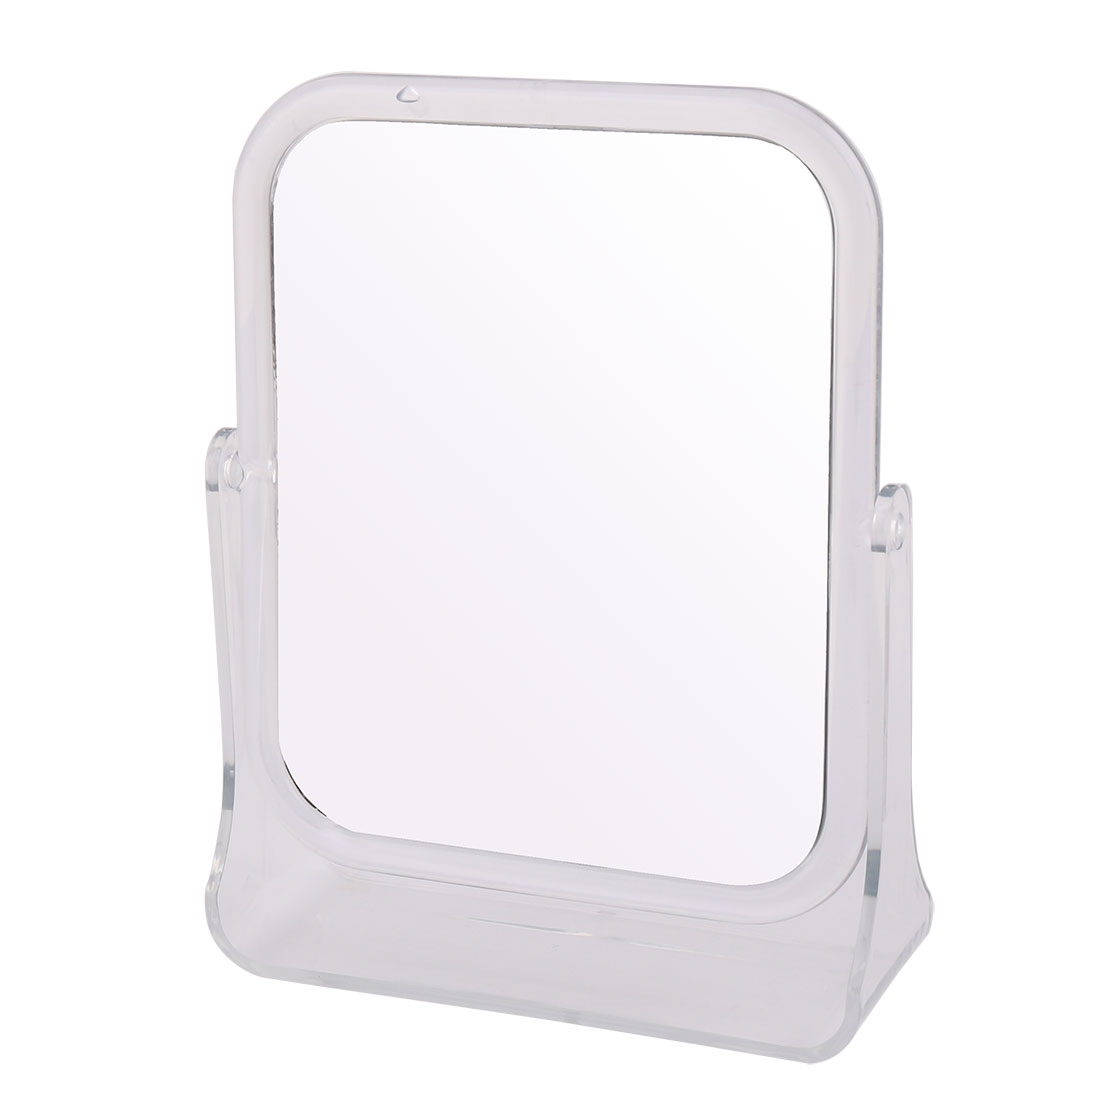 Women Lady Plastic Double Side Square Shaped Portable Makeup Cosmetic Present Mirror Clear